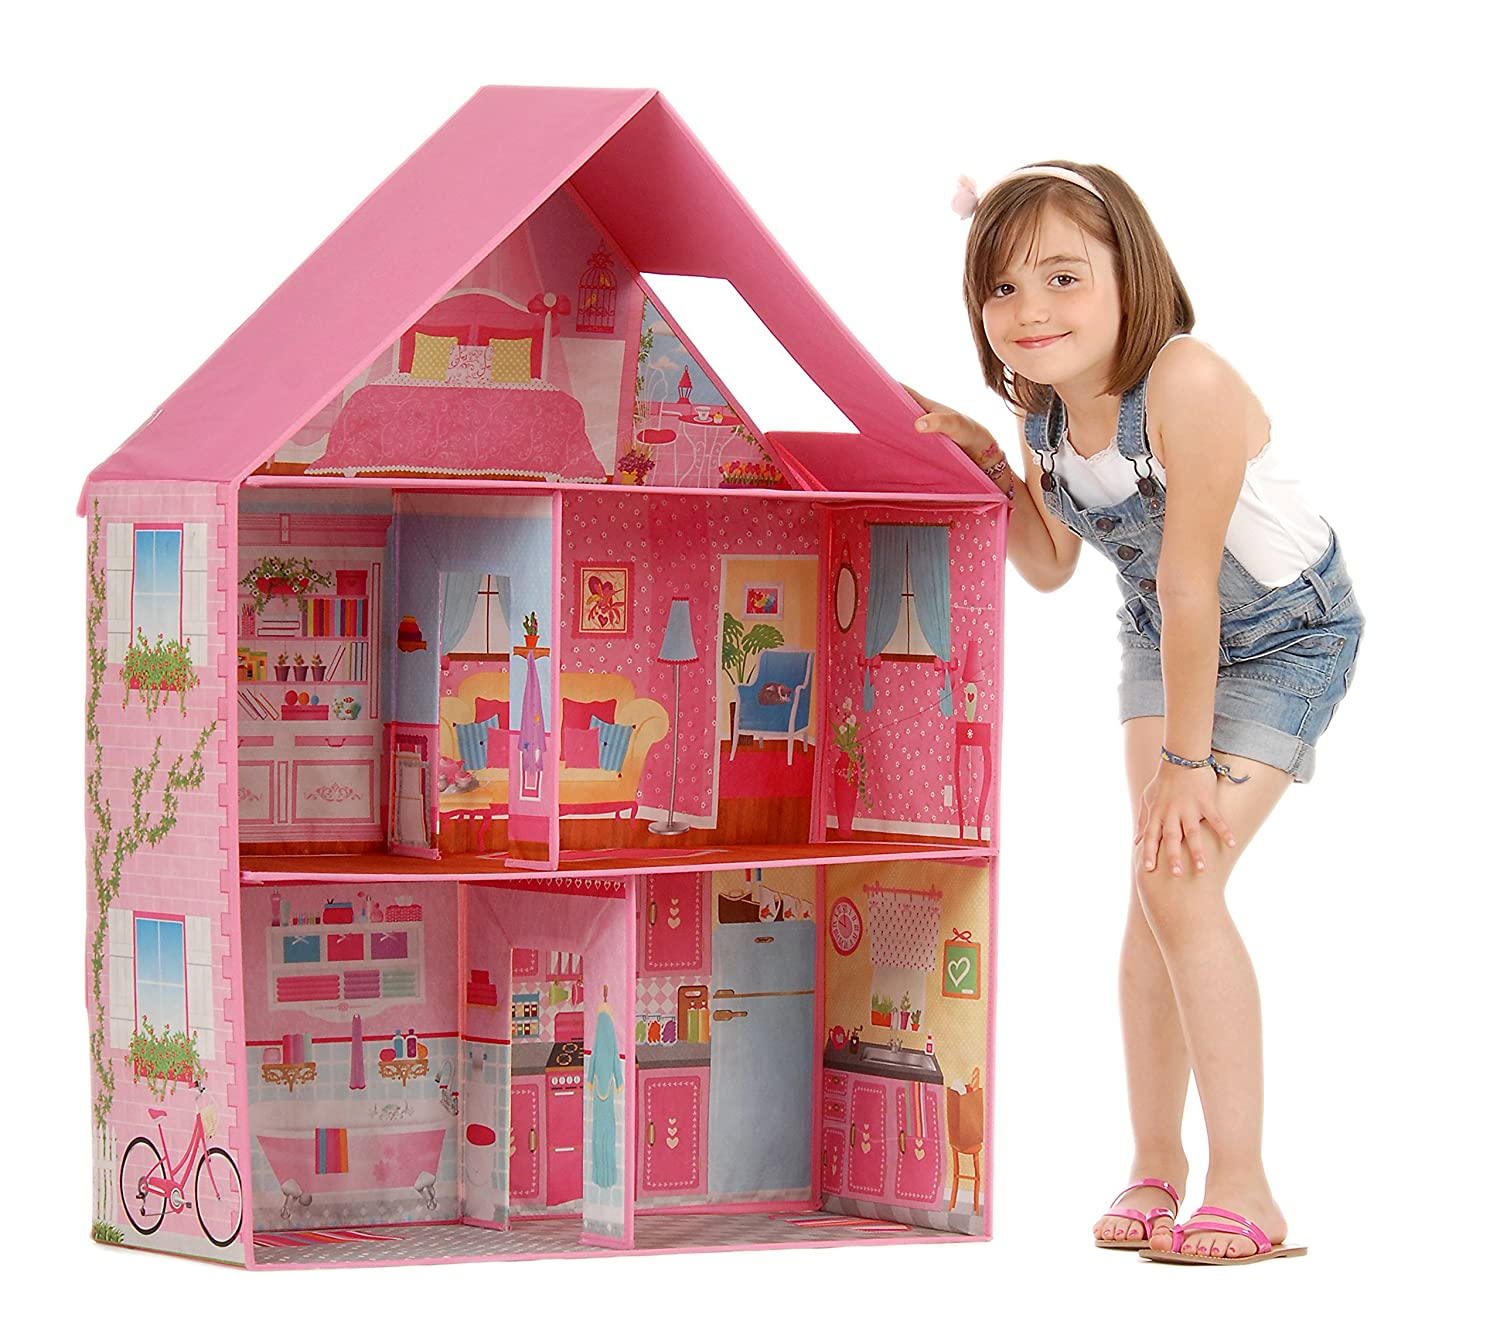 100 Barbie Room In A Box 93 Best Barbie Images On Pinterest Doll Clothes Barbie Dolls